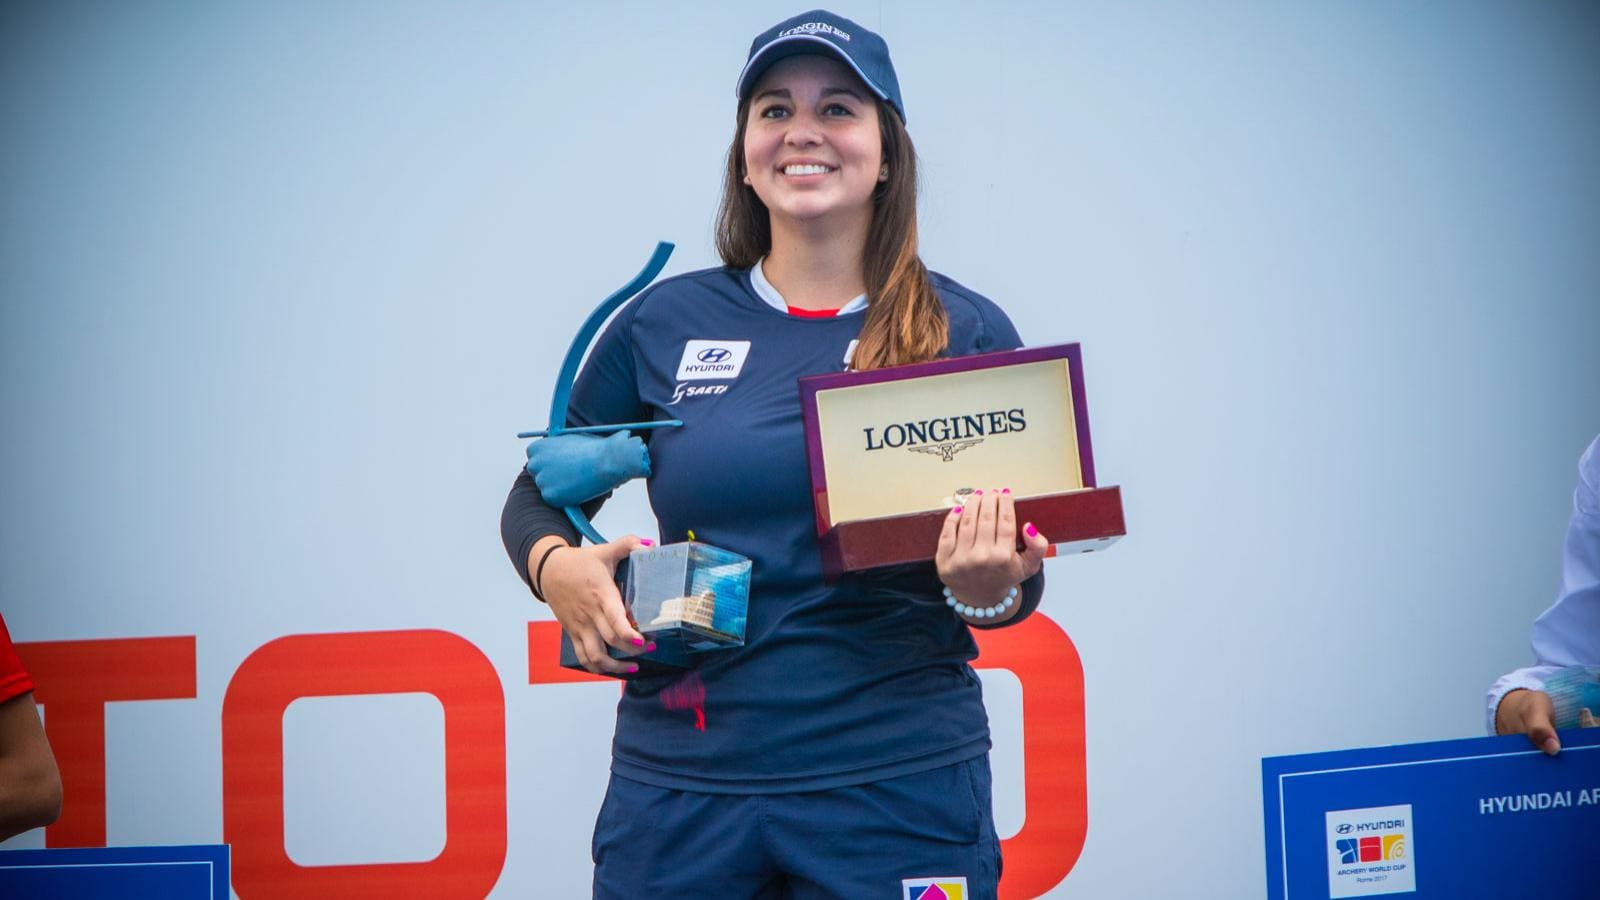 Archery World Cup Finals 2017; Rome; Endurance; 2017,pic1